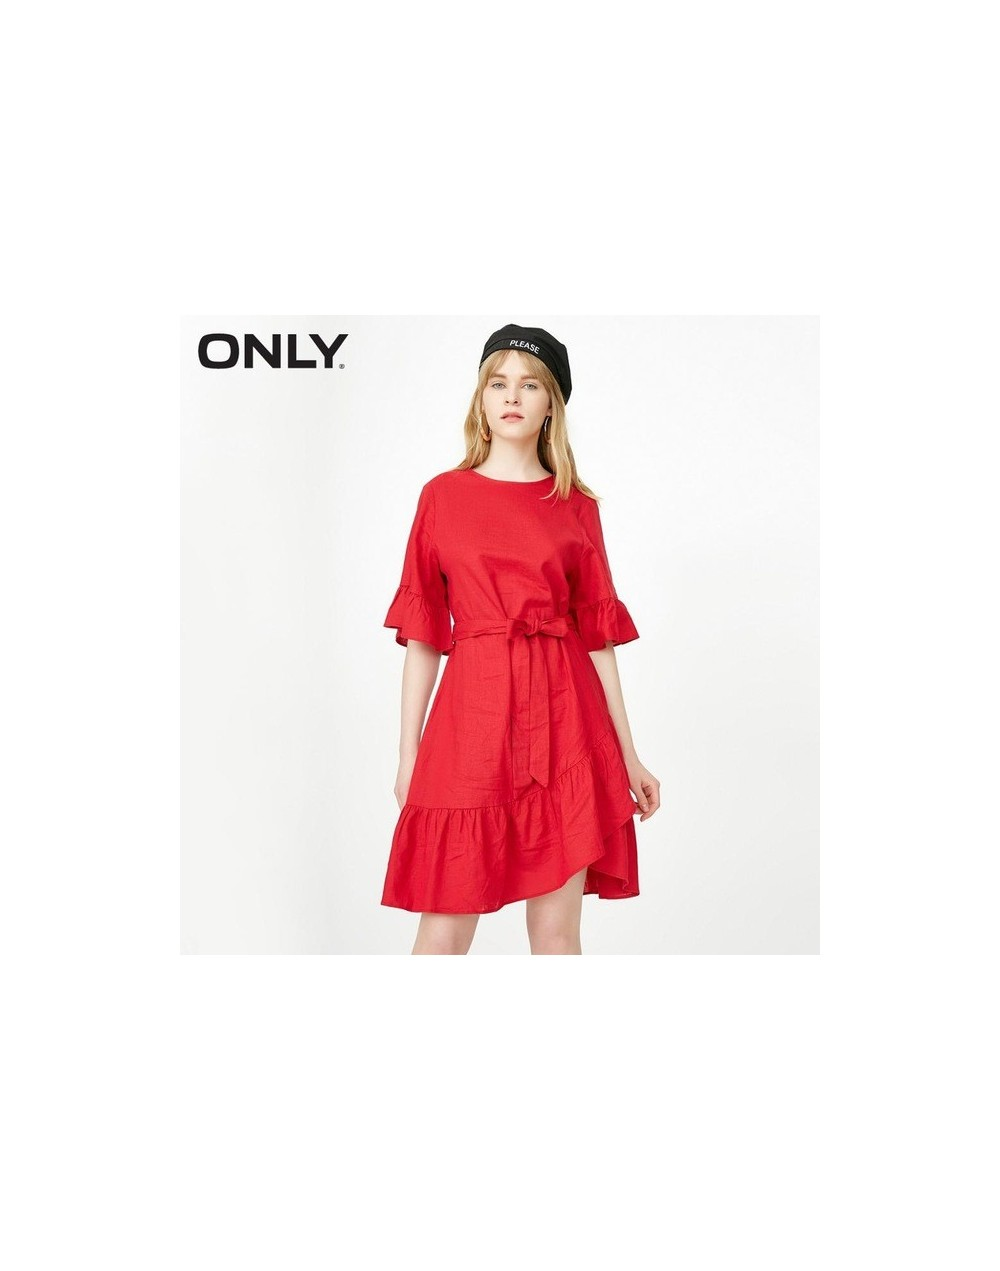 Ruffled Lace-up Cinched Waist Dress 118207528 - Red - 4W3096245251-2